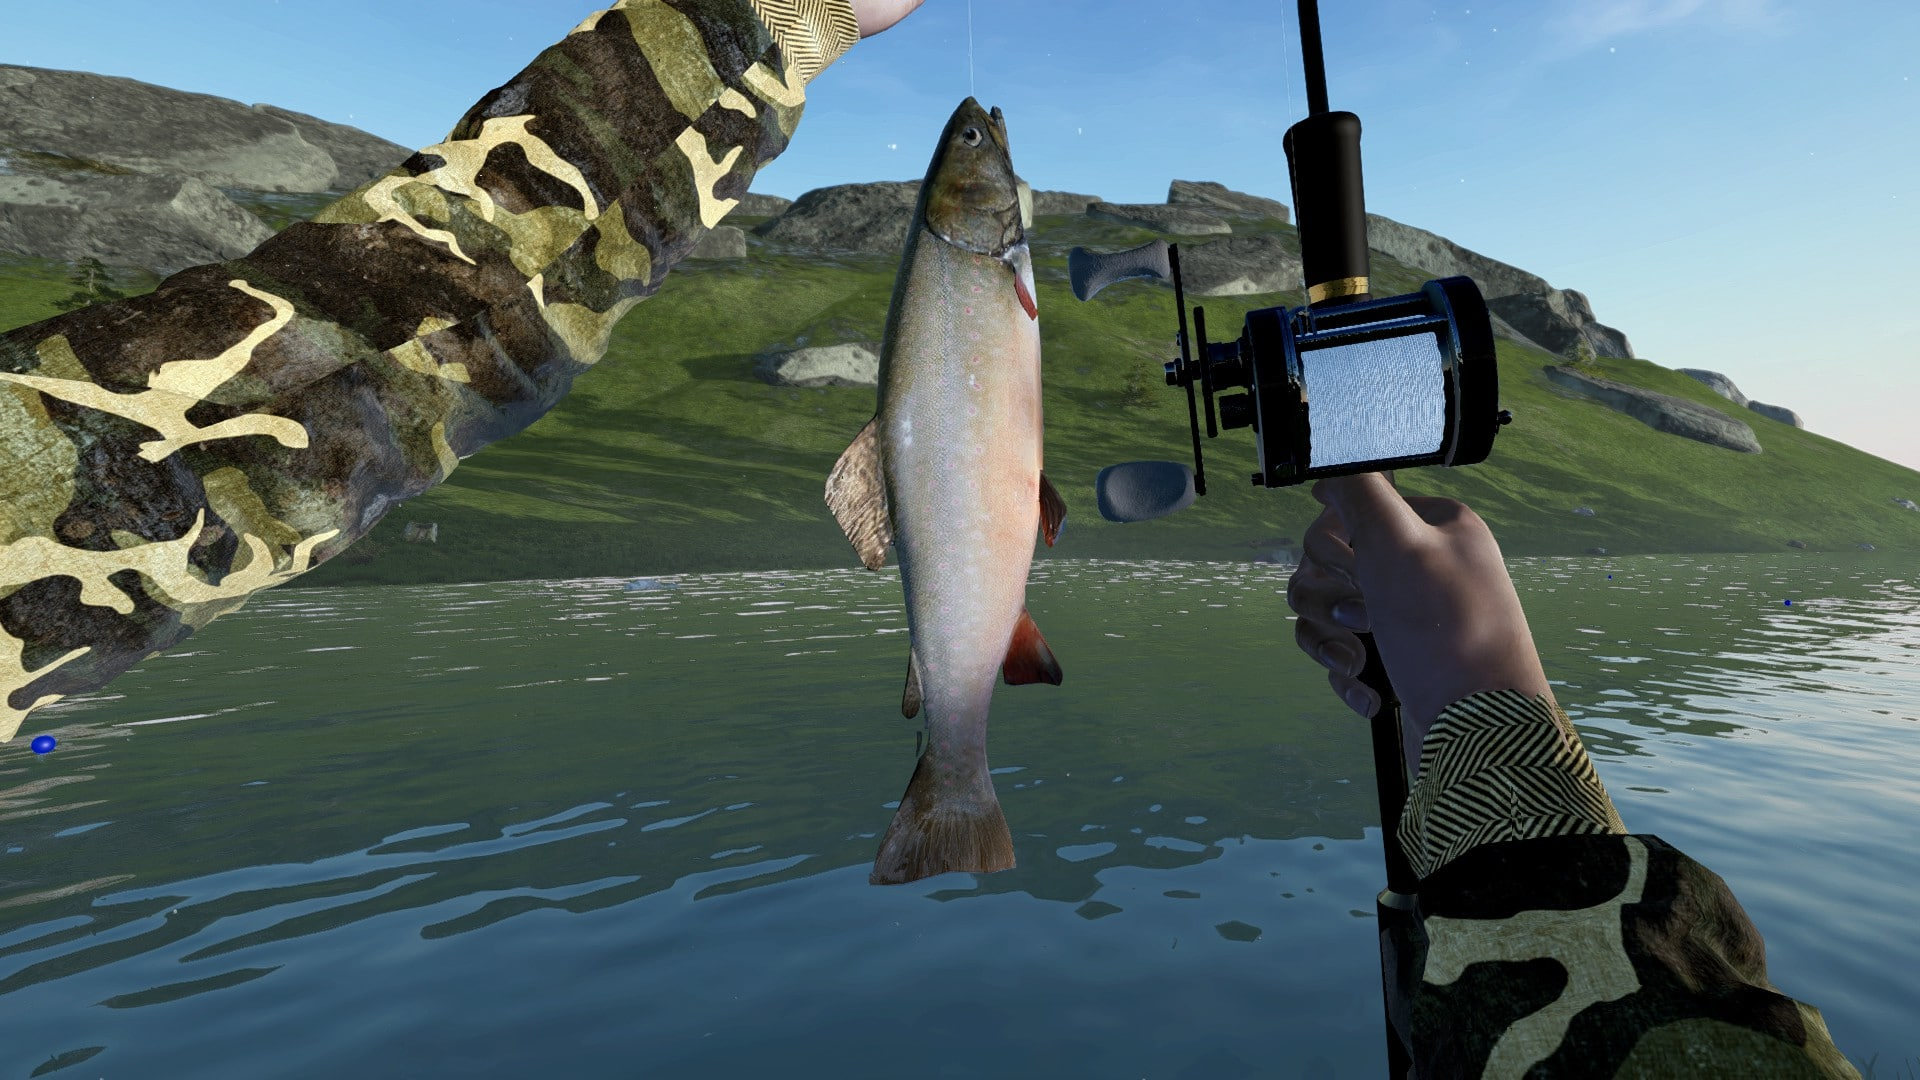 ultimate fishing simulator free download cracked games org